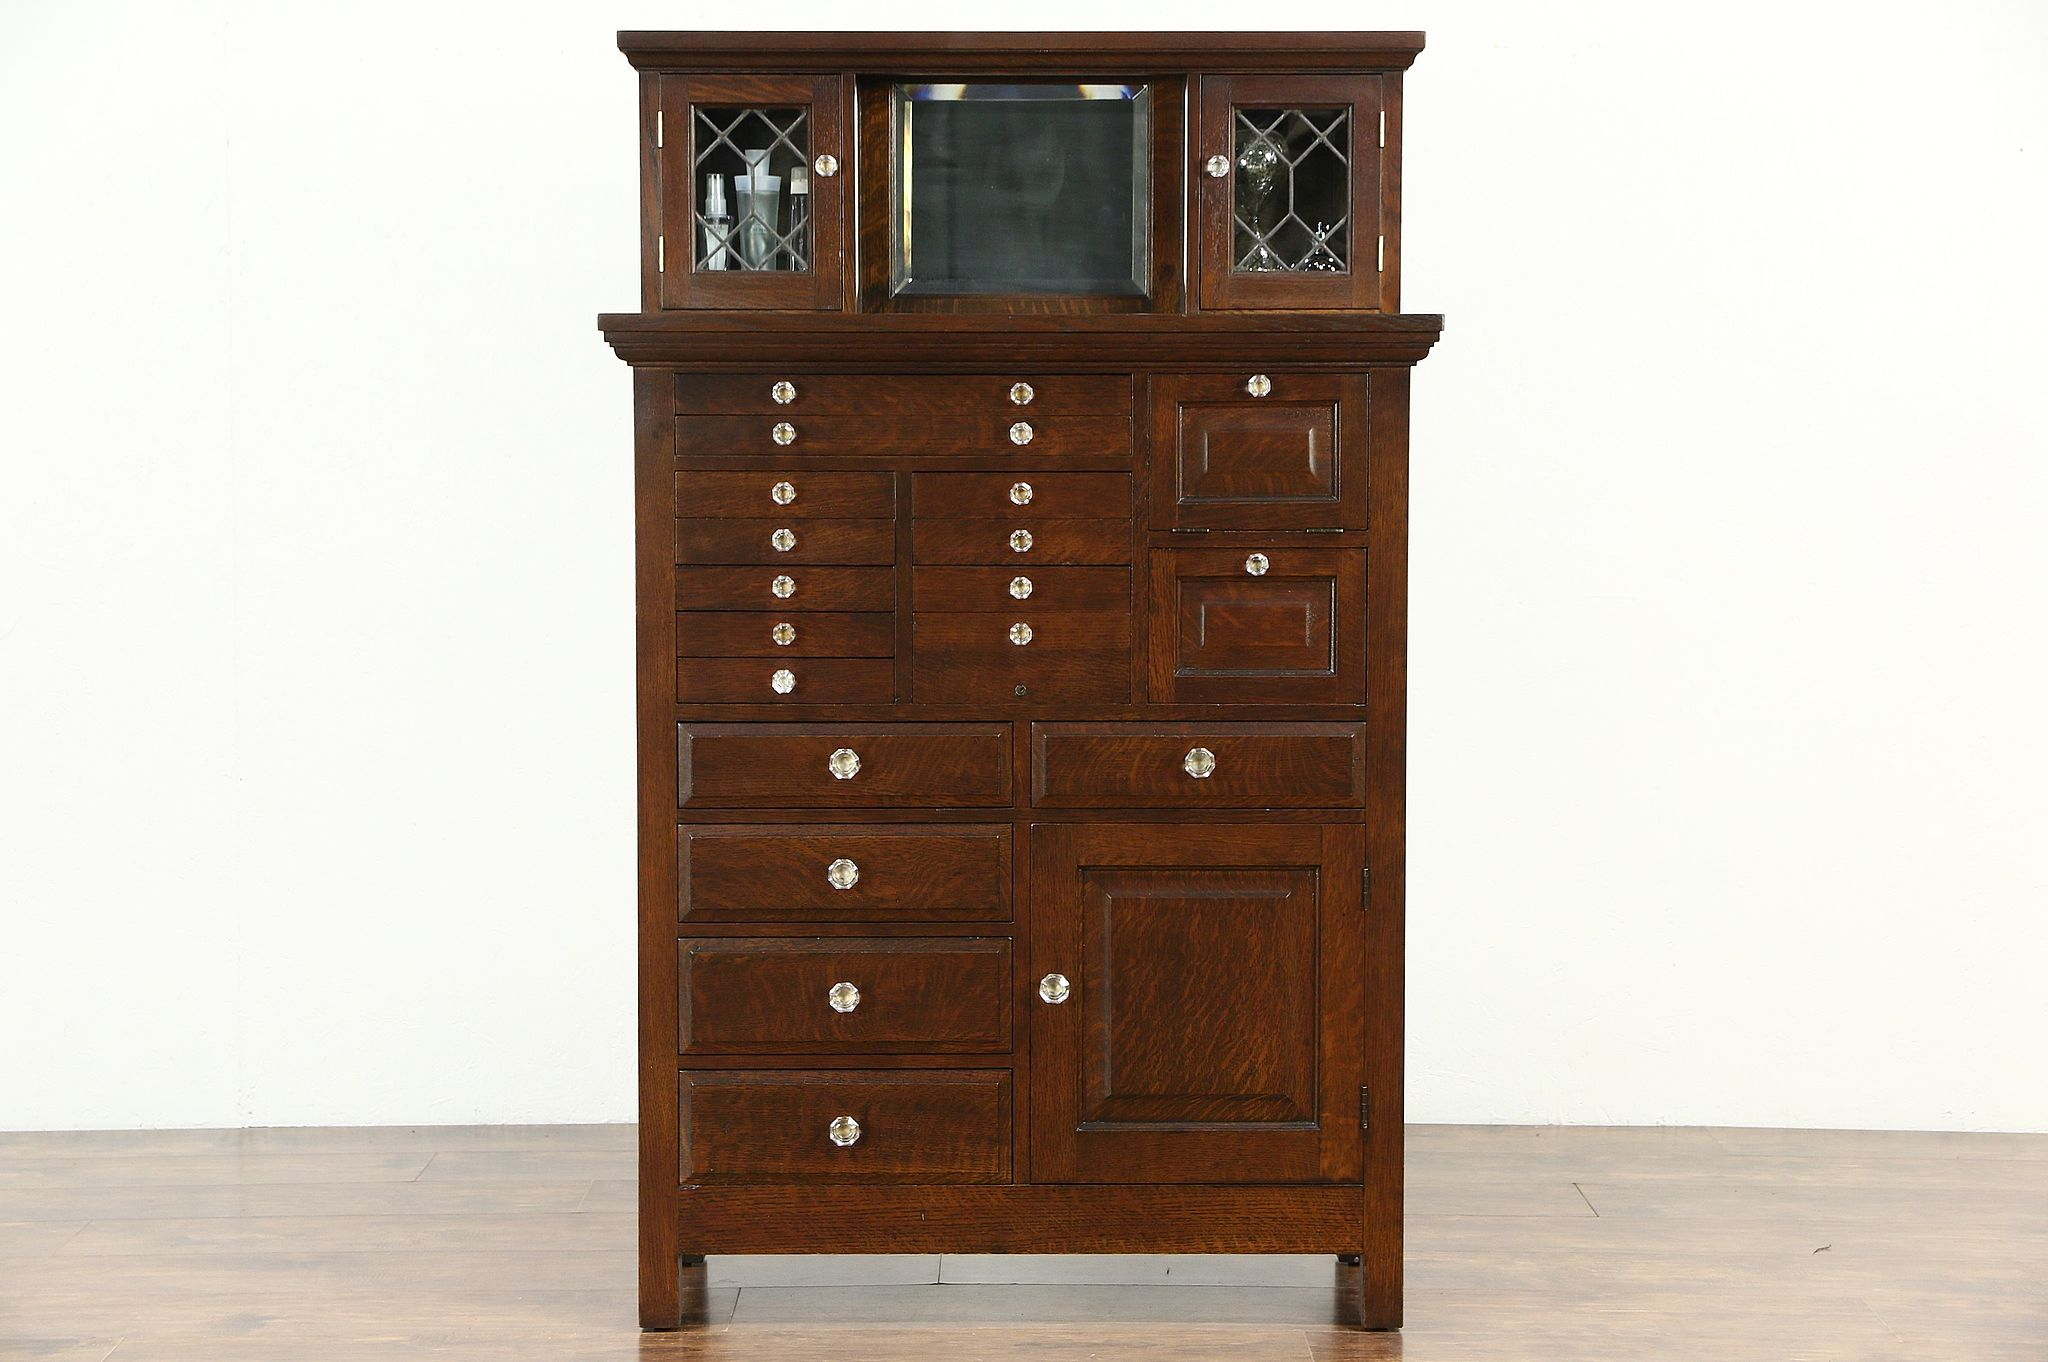 Sold Oak Dentist Antique Dental Jewelry Or Collector Cabinet